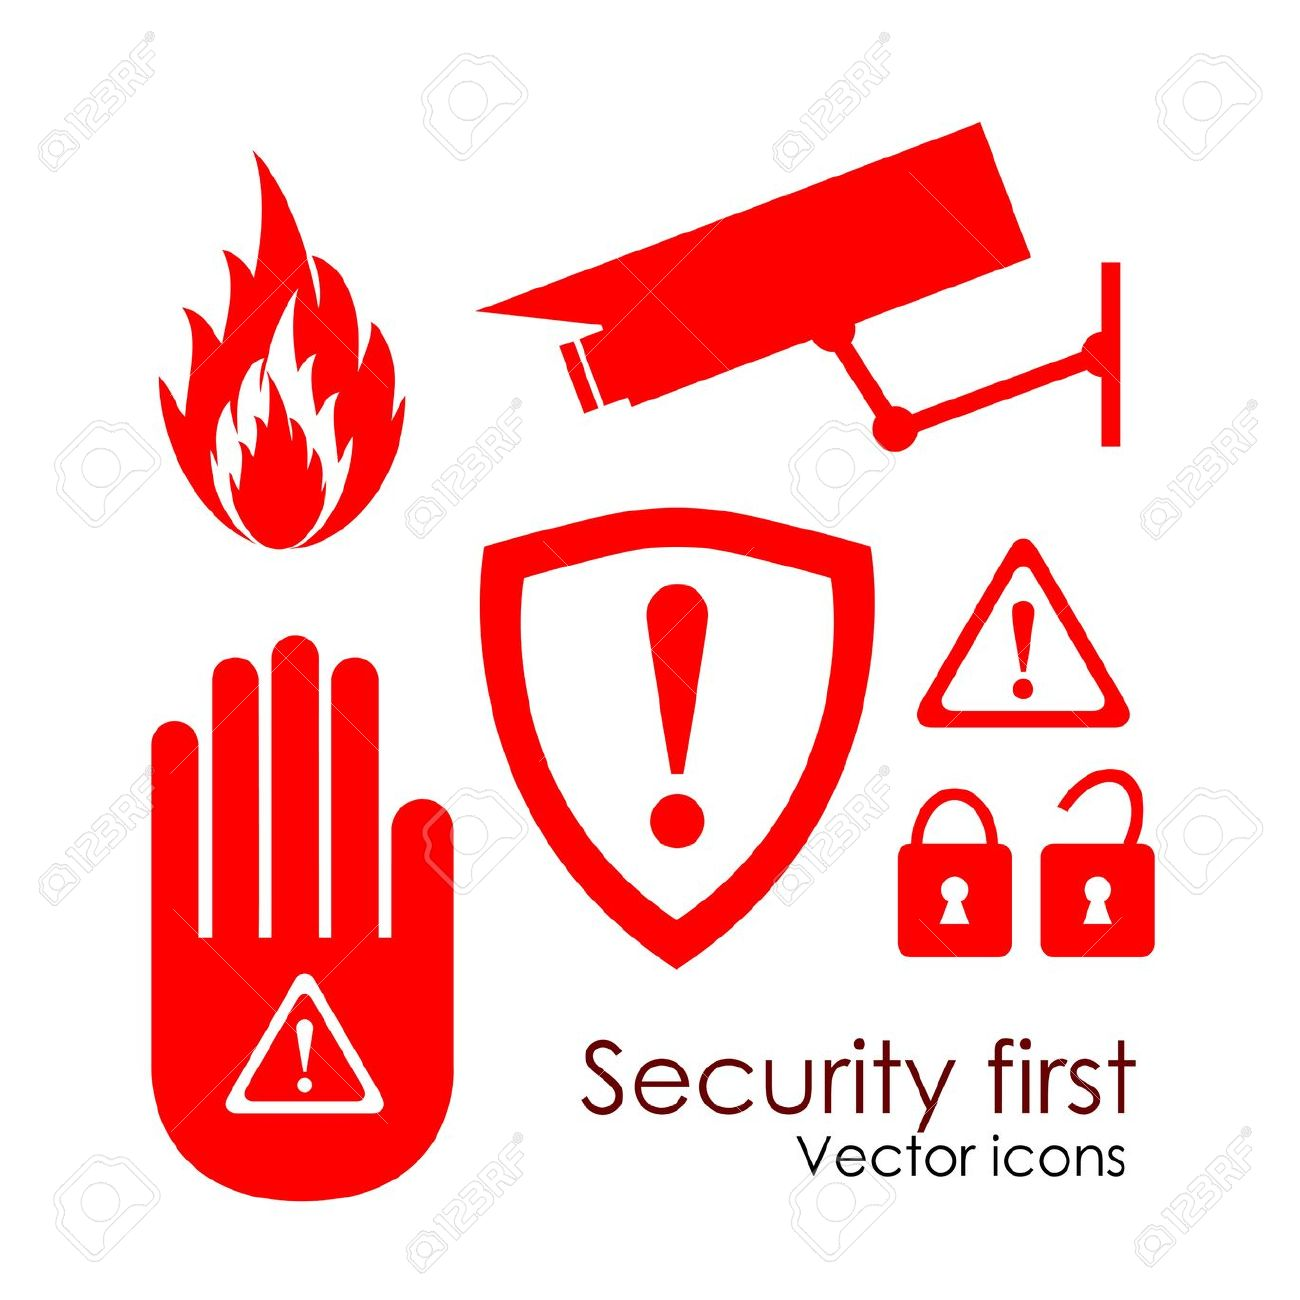 Security logo clipart sign svg download 8,075 Security Logo Stock Vector Illustration And Royalty Free ... svg download